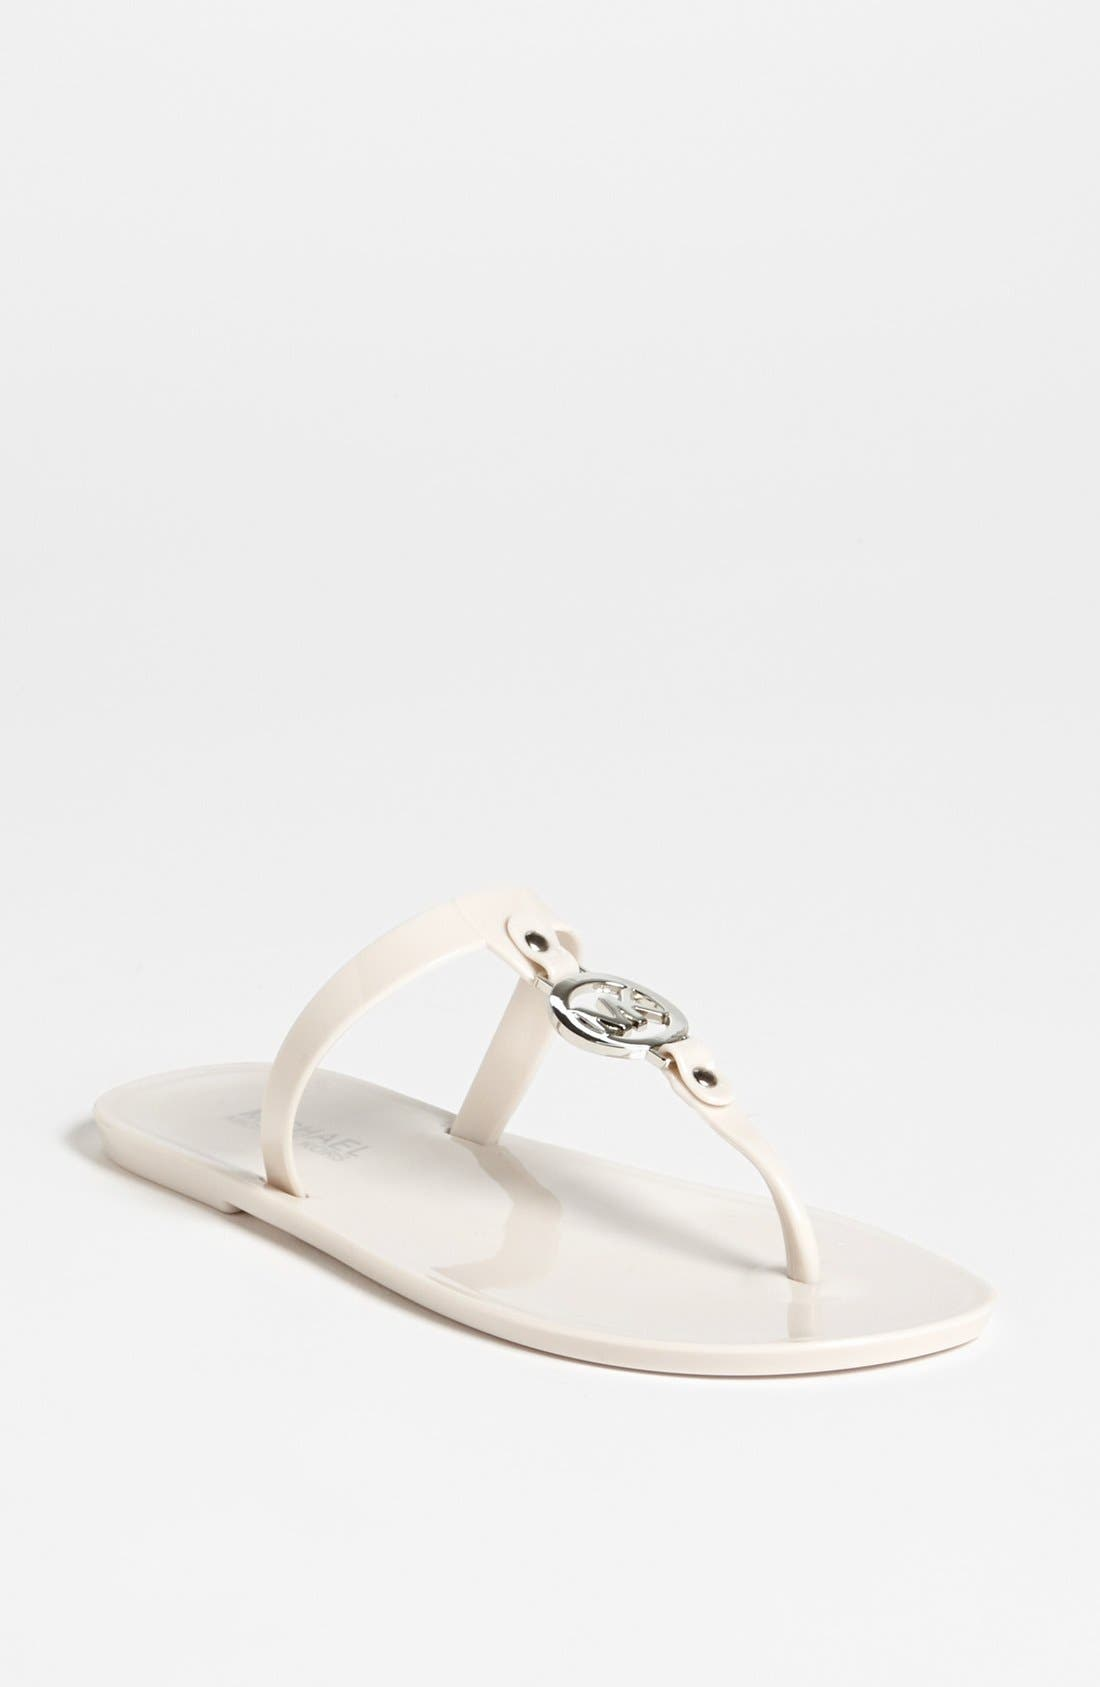 Main Image - MICHAEL Michael Kors 'Sondra' Jelly Sandal (Nordstrom Exclusive)